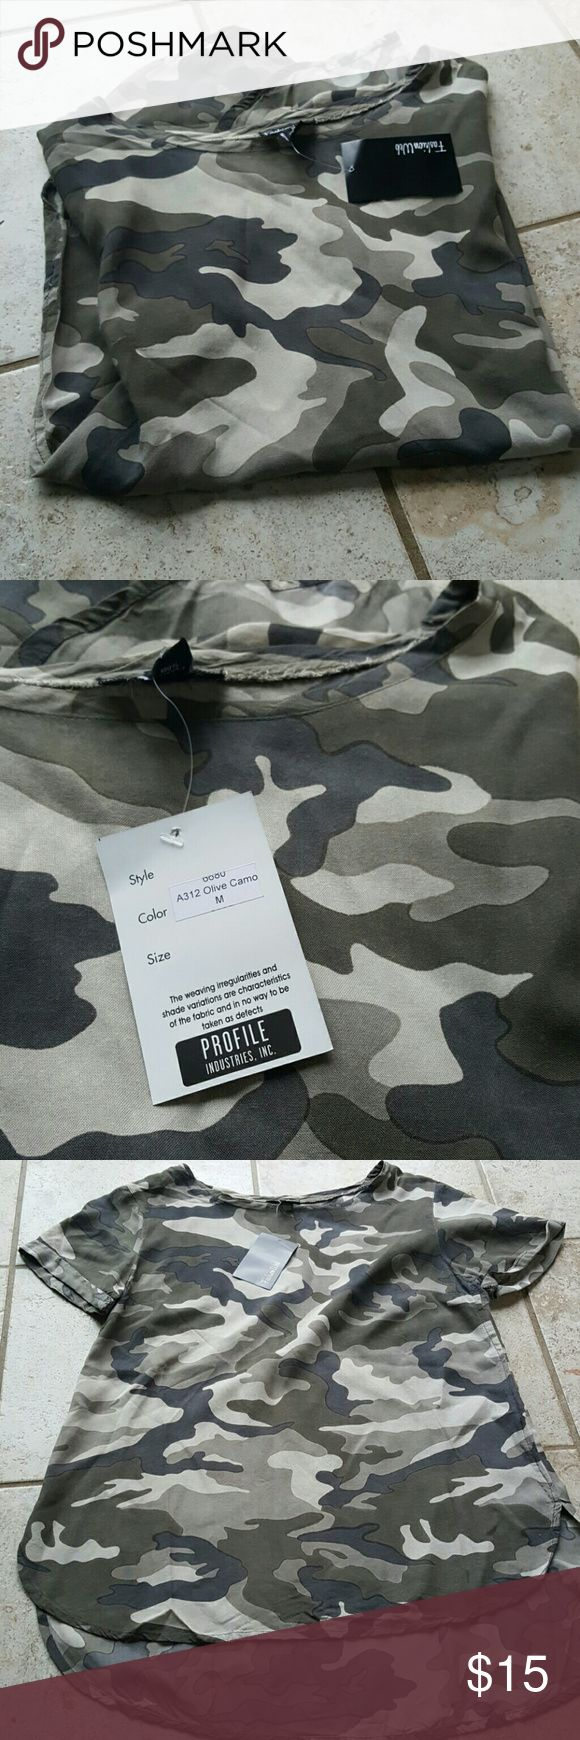 Fashion Webb camouflage top New with tags. Size Medium. Camo printed short sleeve top.100%% rayon. Fashion Webb  Tops